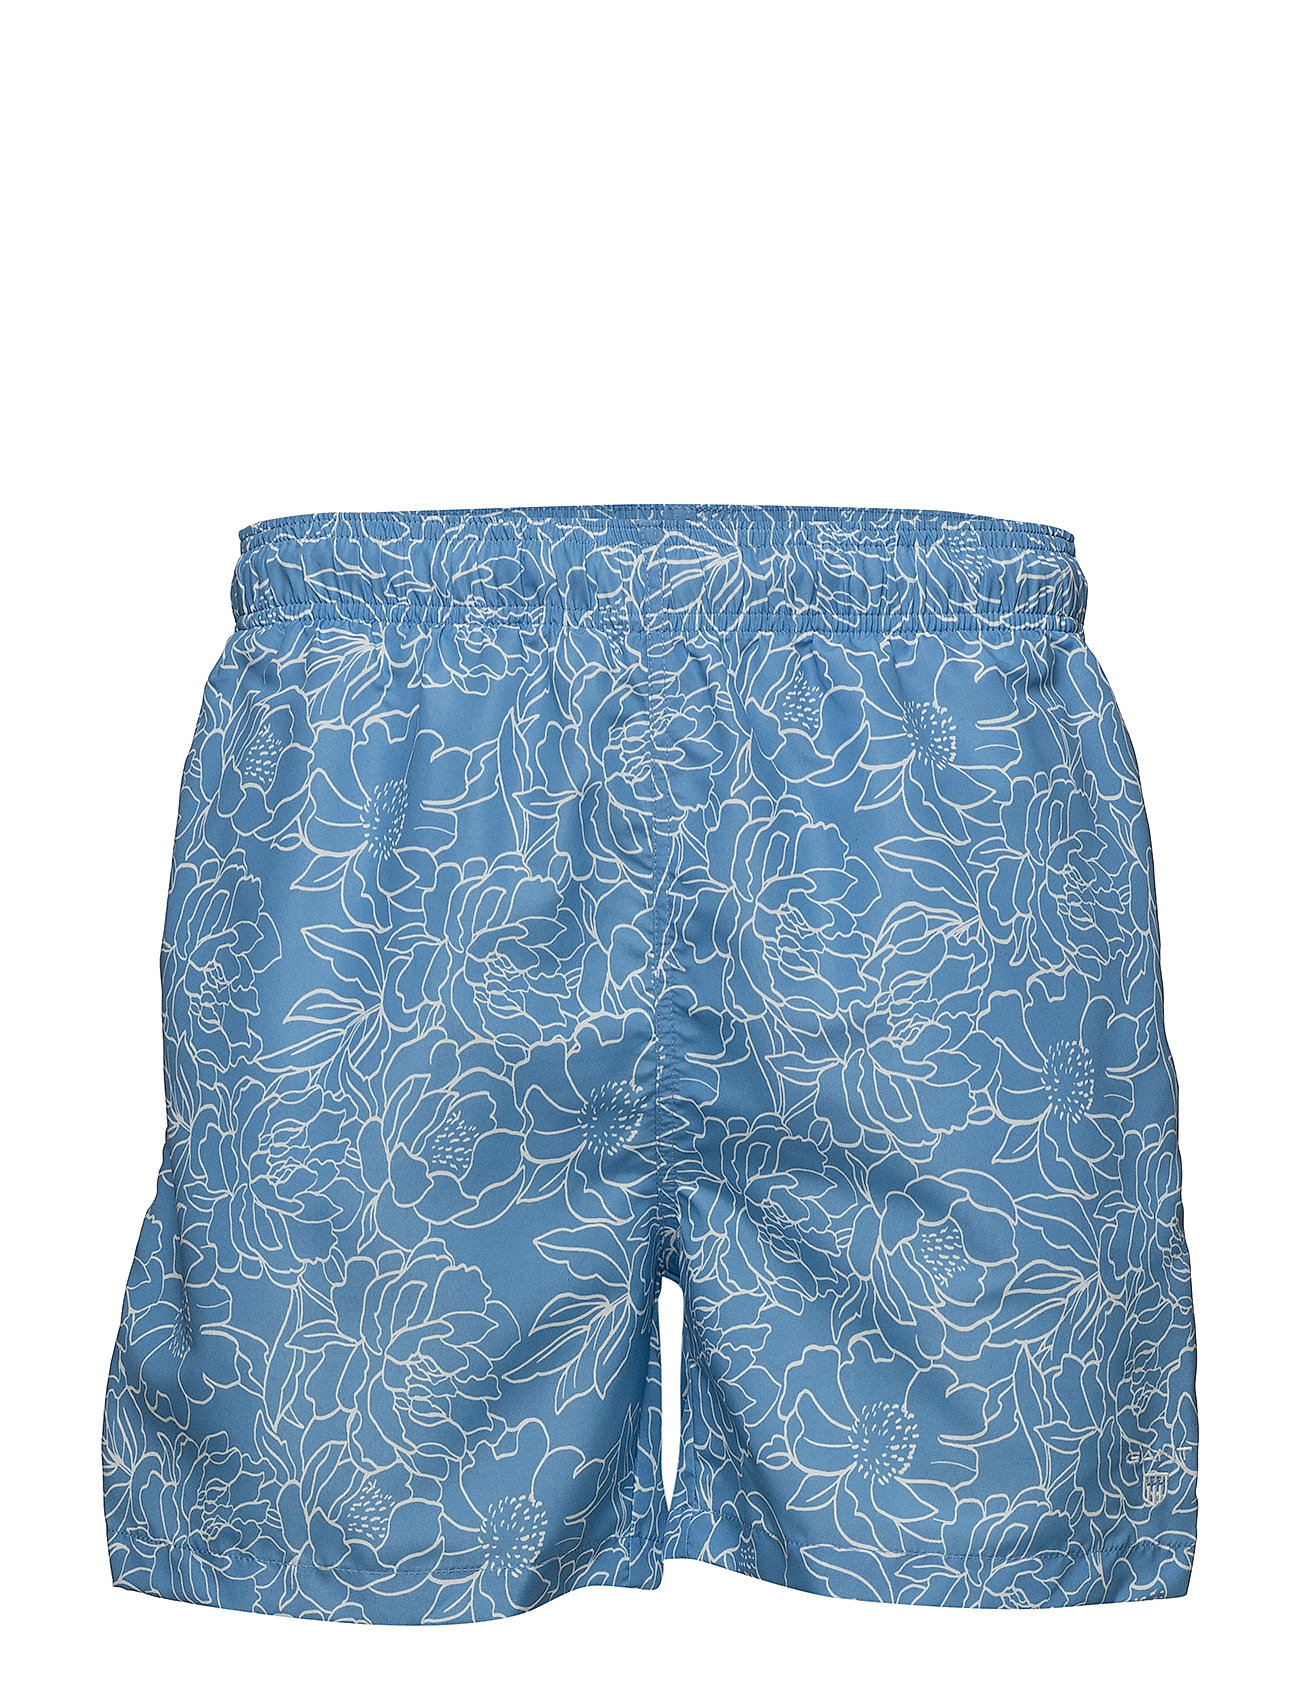 Gant FULL BLOOM OUTLINE SWIM SHORTS C.F. - LAVA BLUE